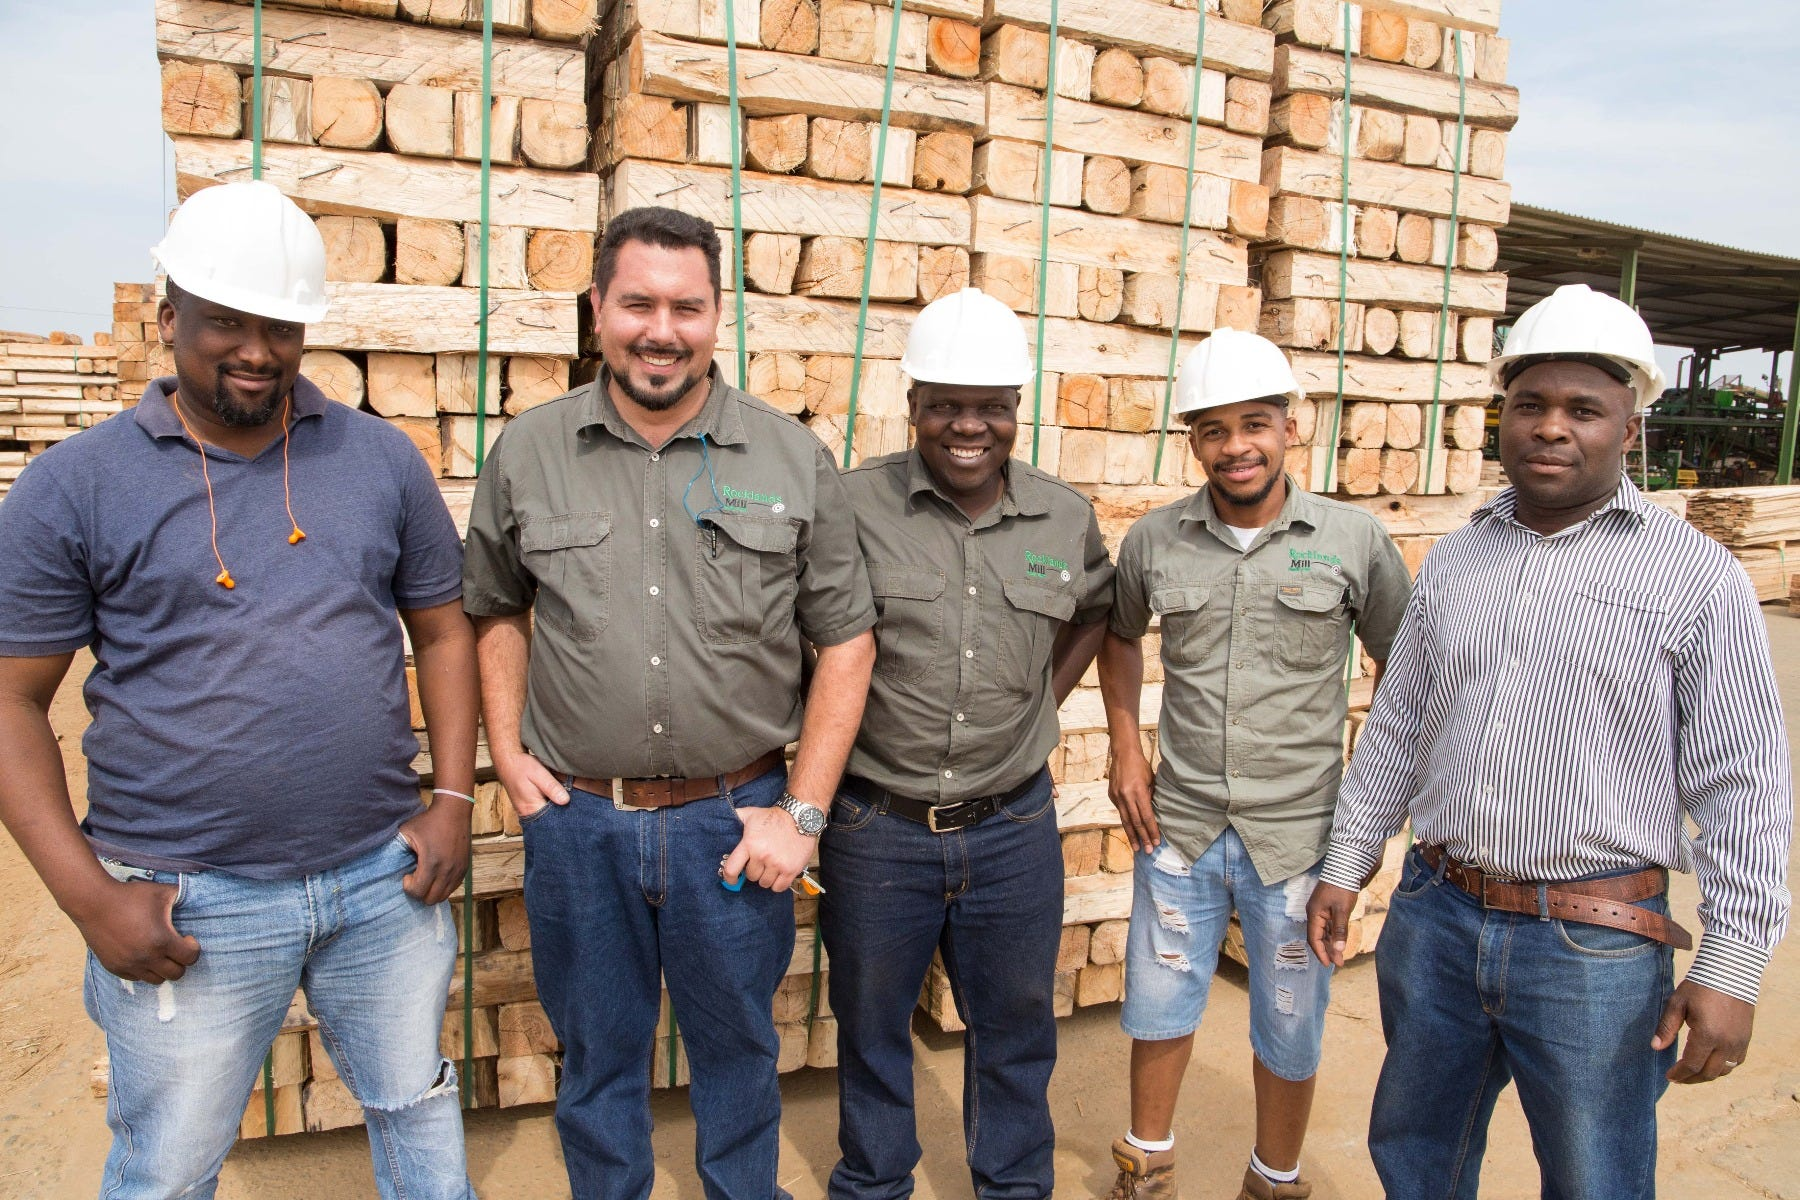 The dynamic management team of Rocklands Sawmill. From ltr is Ncamiso Bhembe – Yard Foreman, Jaco Fourie – Sawmill Manager, X-Mas Musenzo –WOS Manager, Bonke Dlamini – Pack Mill Manager and Elijah Bera – Senior Production Manager.